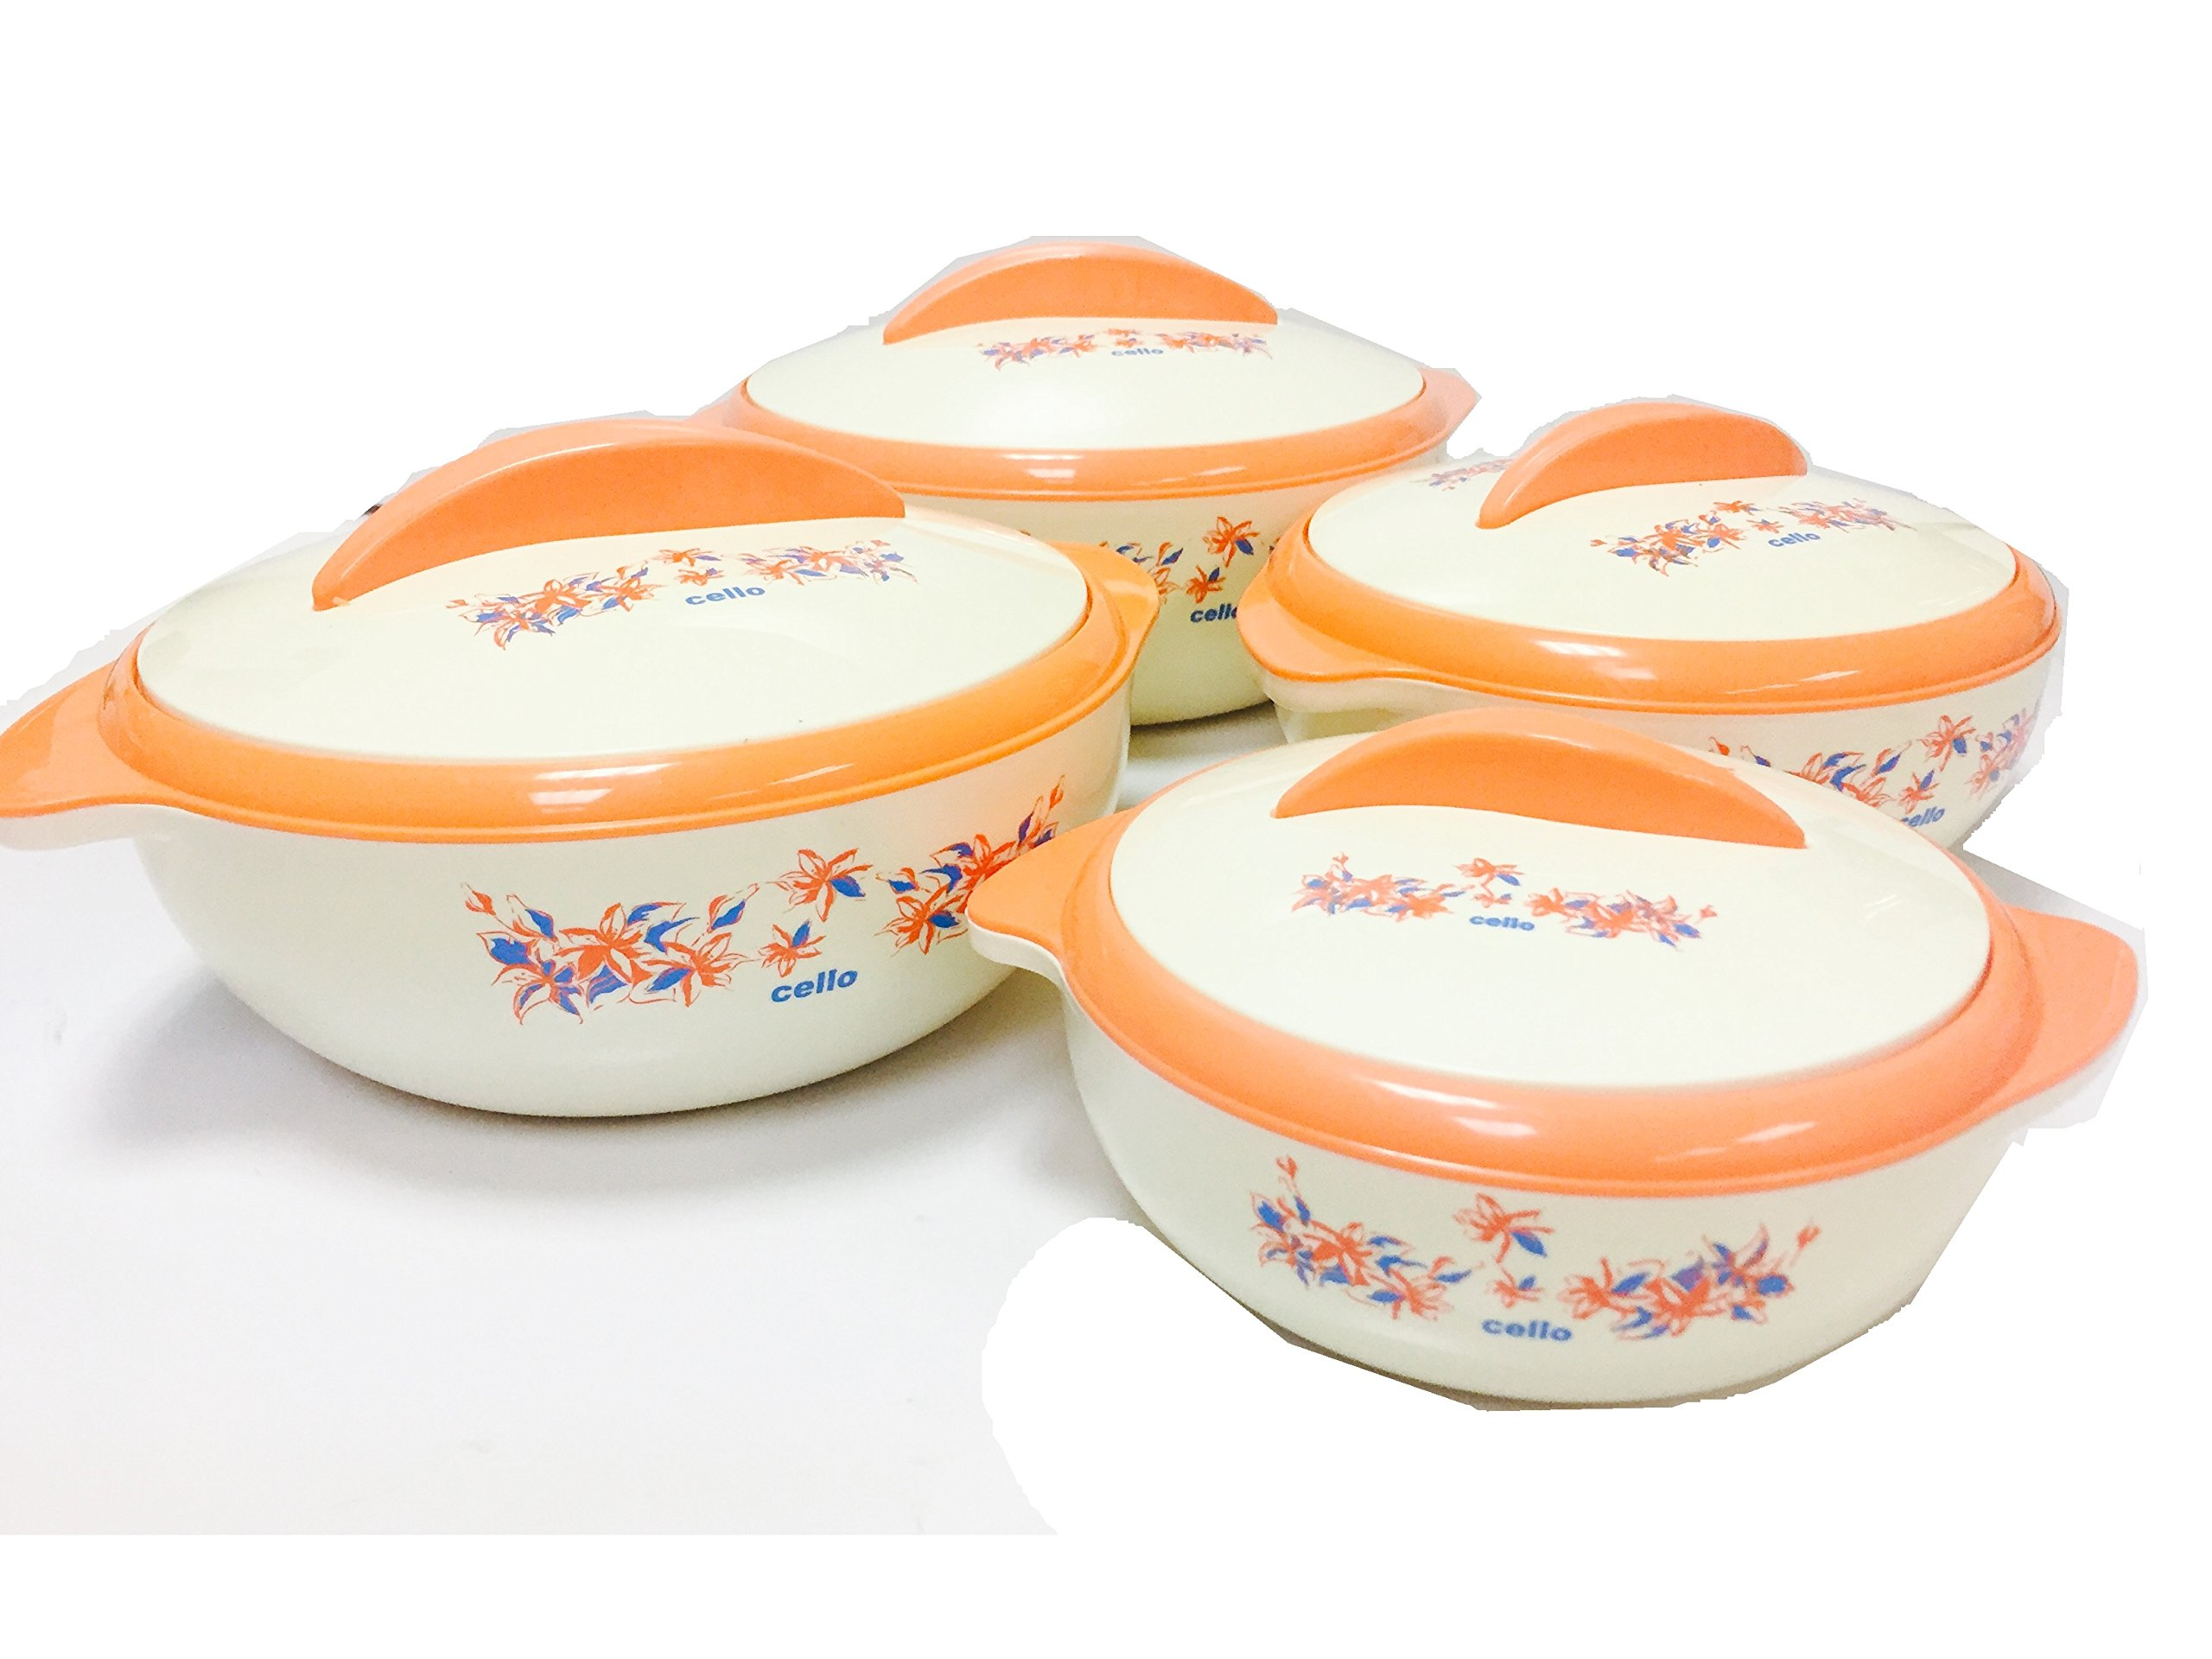 Cello Sizzler Insulated Casserole Food Server Hot Pot Gift Set (4-Piece Set) by Cello (Image #1)